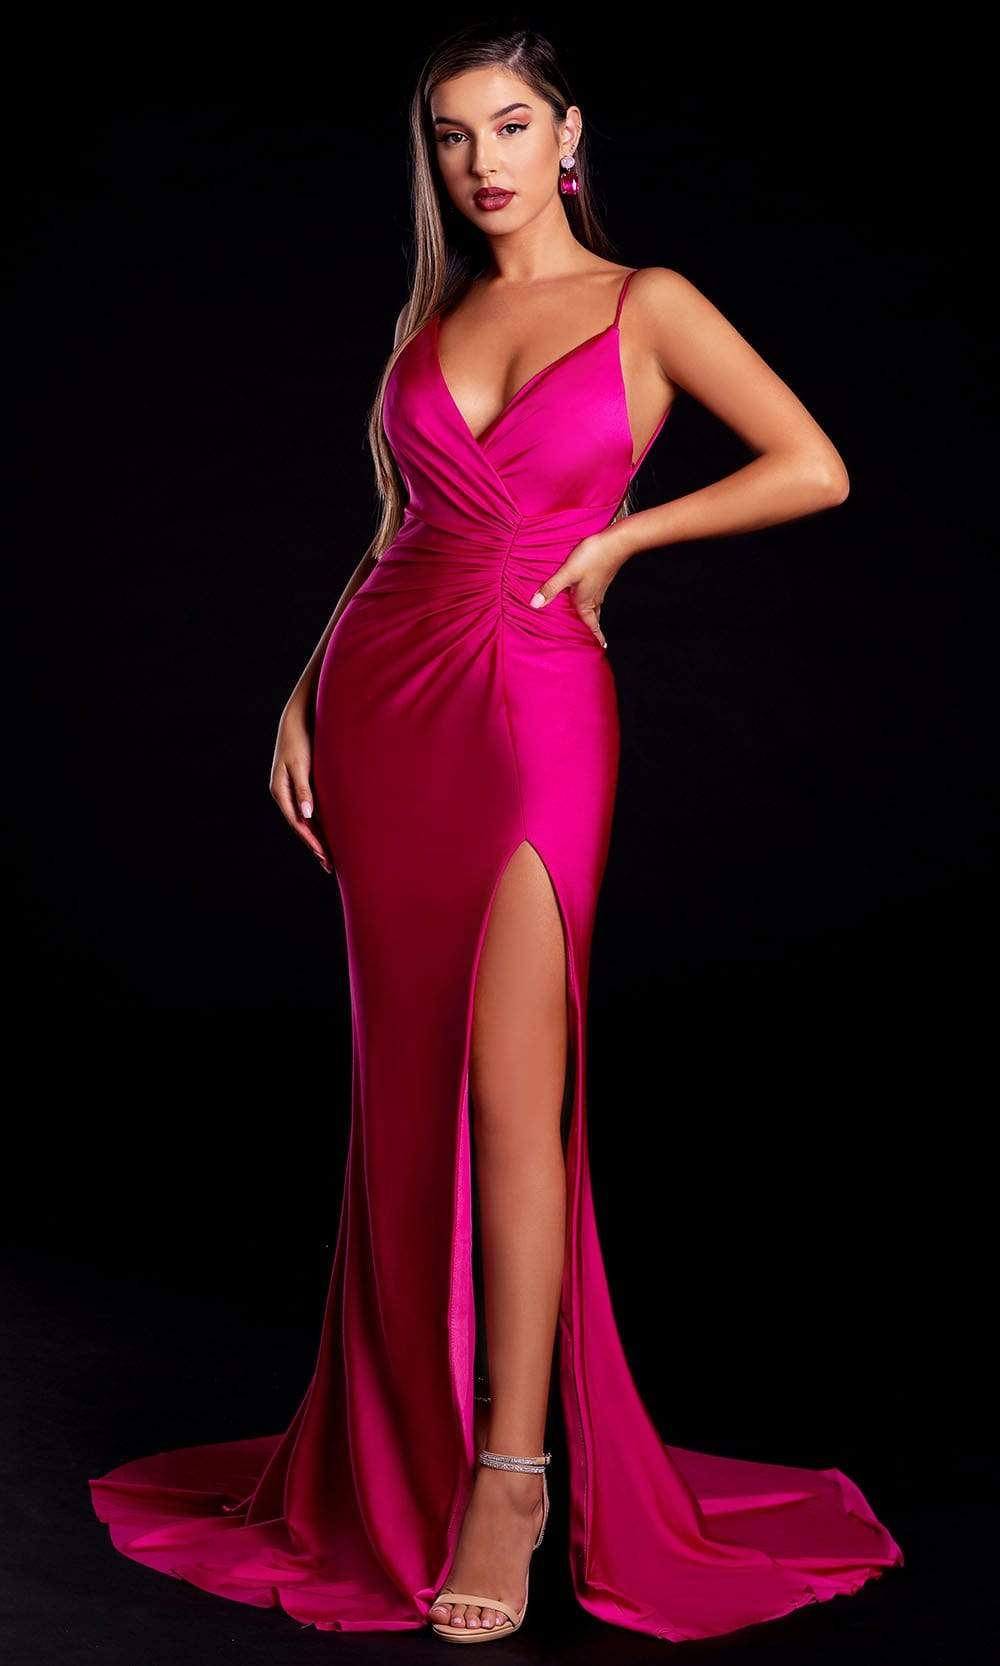 Portia and Scarlett - PS6322 Plunged V-Neck High Slit Sheath Gown from Portia and Scarlett